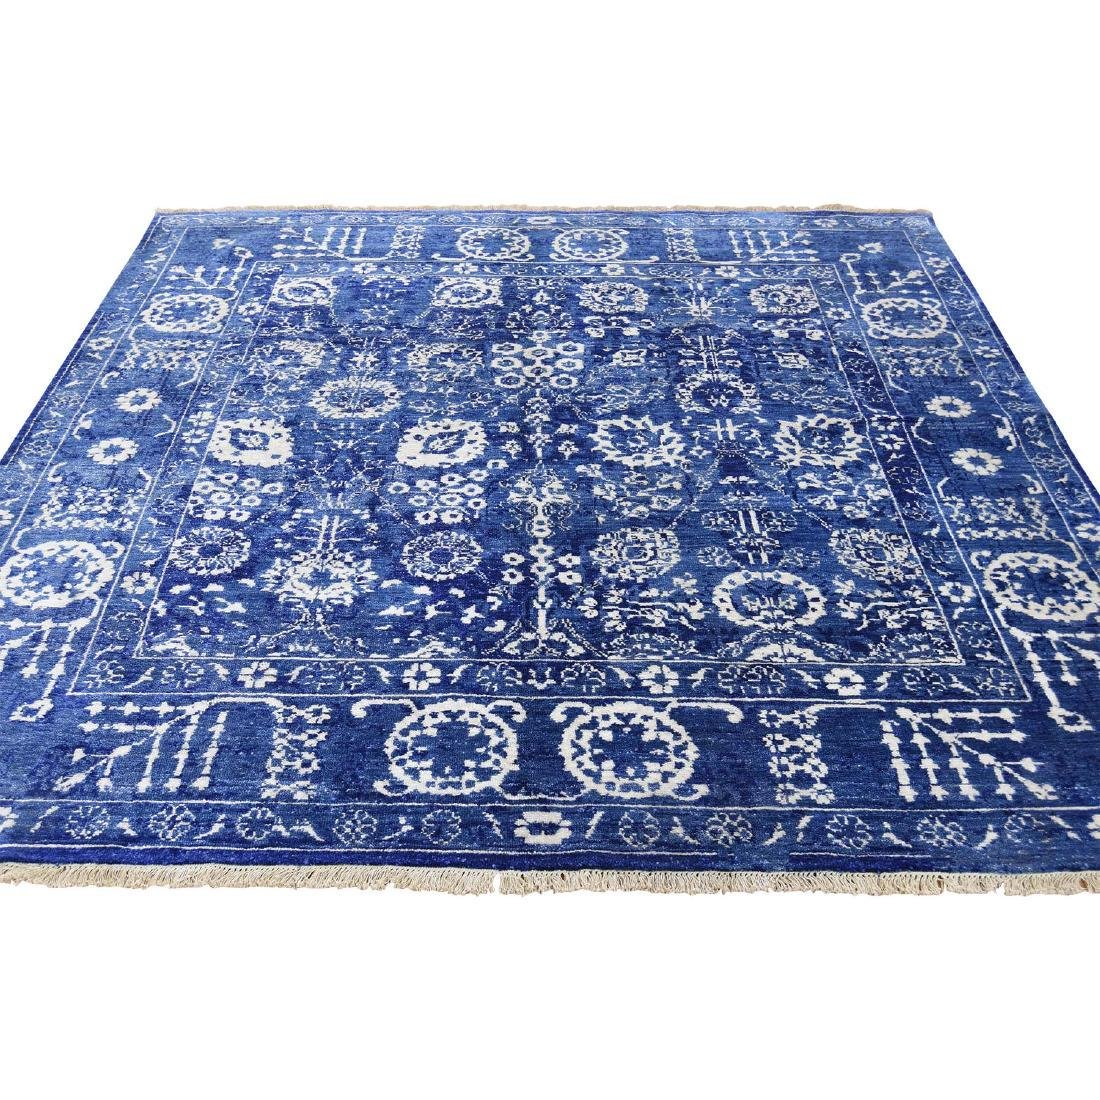 Hand-Knotted Wool and Silk Square Tone on Tone Tabriz